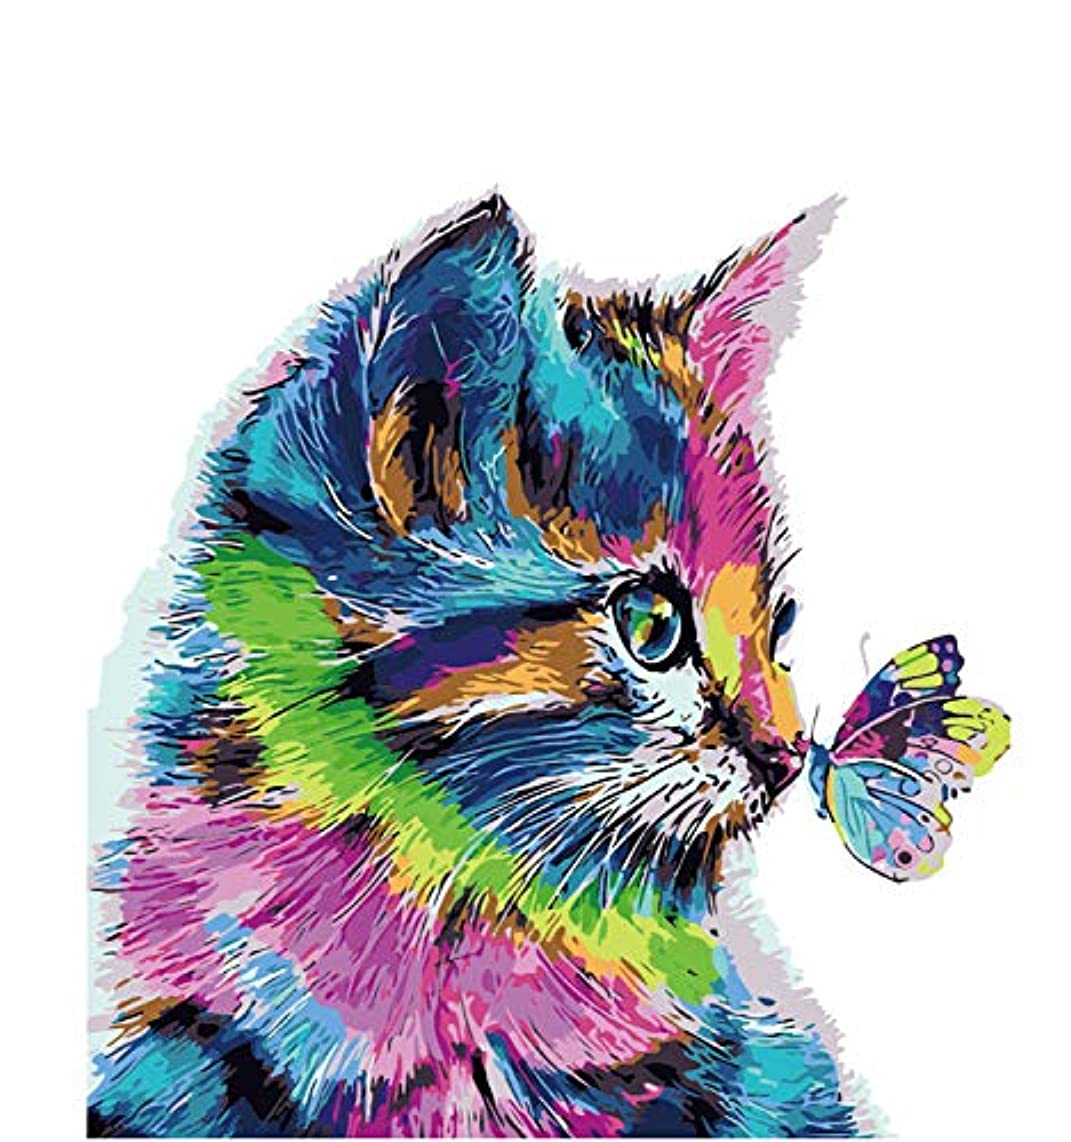 """Paint-by-Number Kits for Adults - Passion (Frameless) - Includes Brushes, Acrylic Paints and Numbered Canvas - Frameless - 16"""" x 20"""" – Great for Kids and Adults (Cat and Butterfly)"""